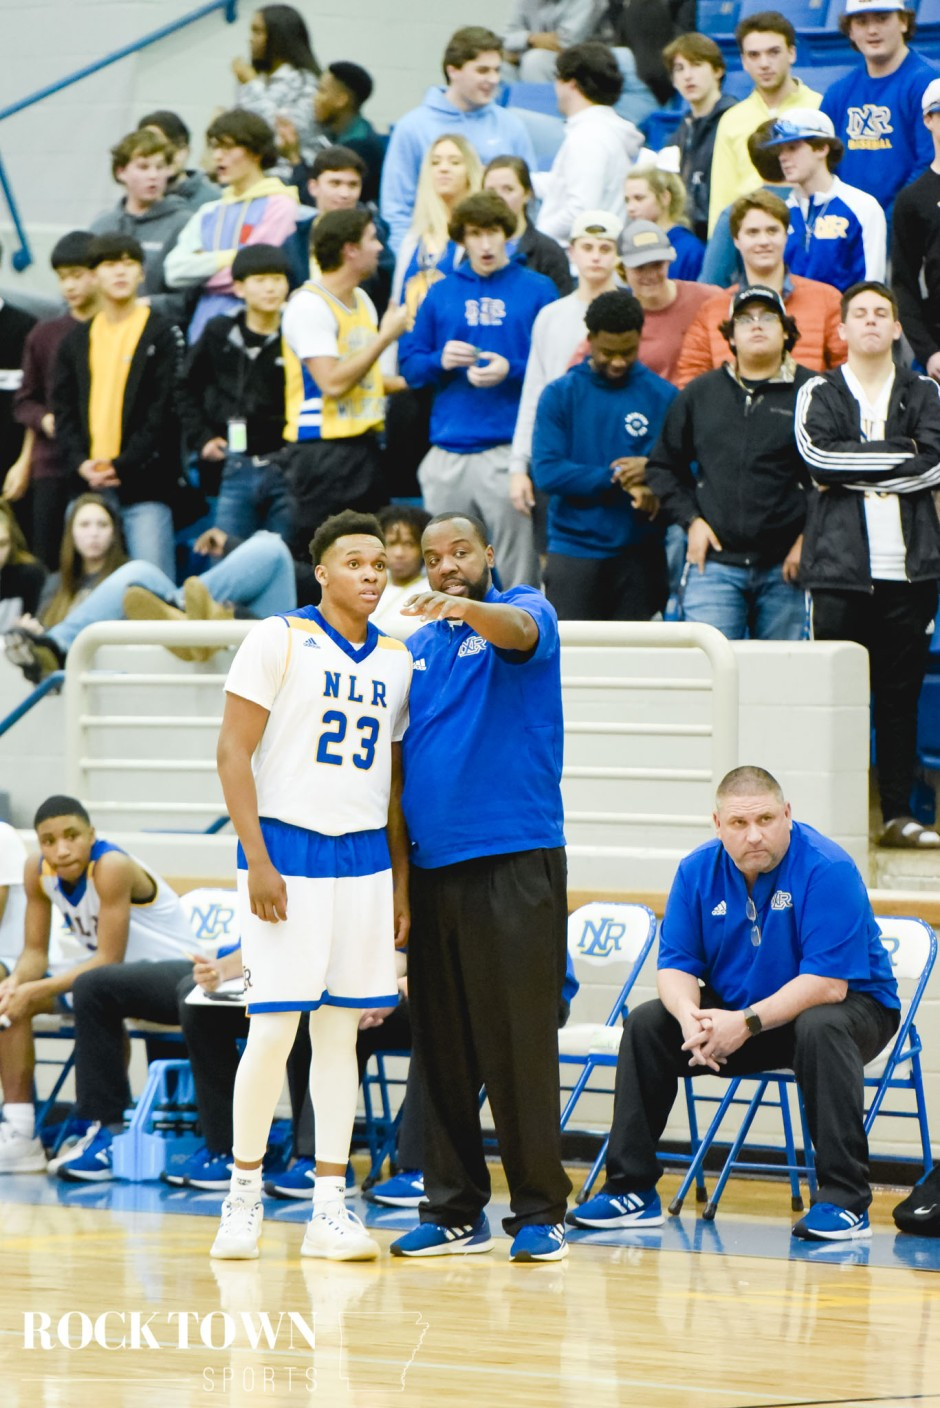 nlr_bryant_basketball_2019-127